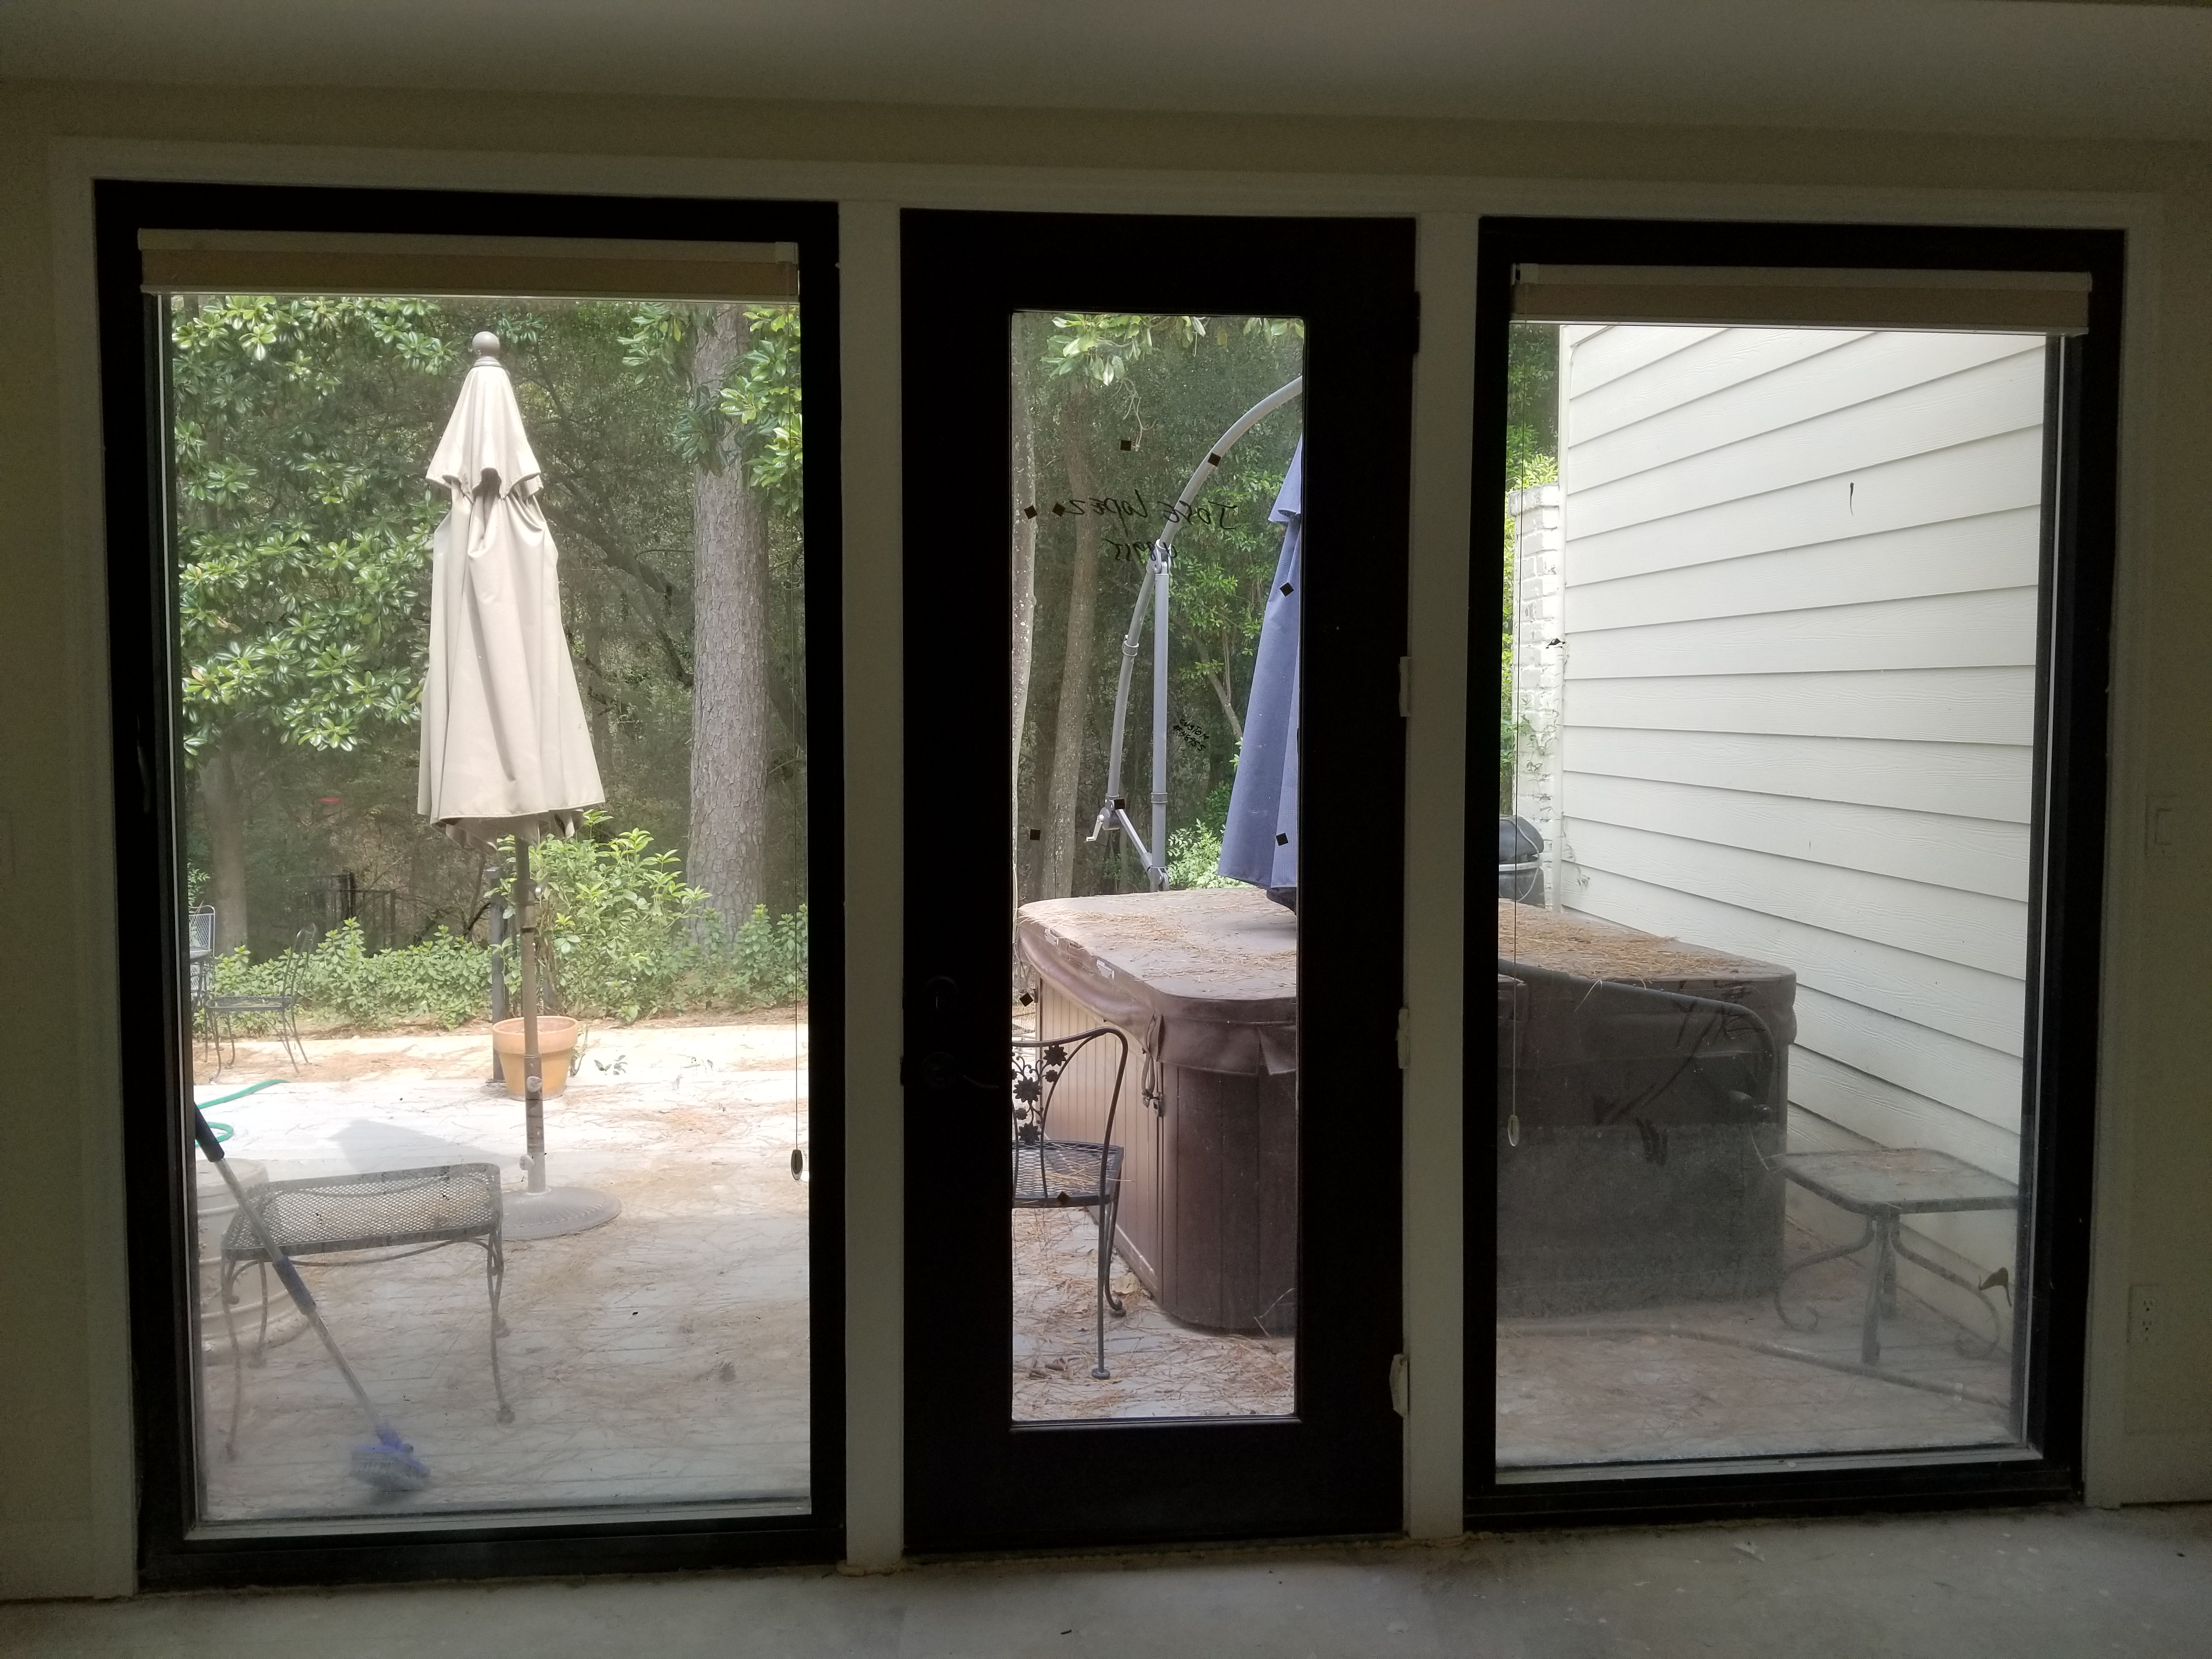 Top Window Cleaning Company in Bunker Hill Village, Texas